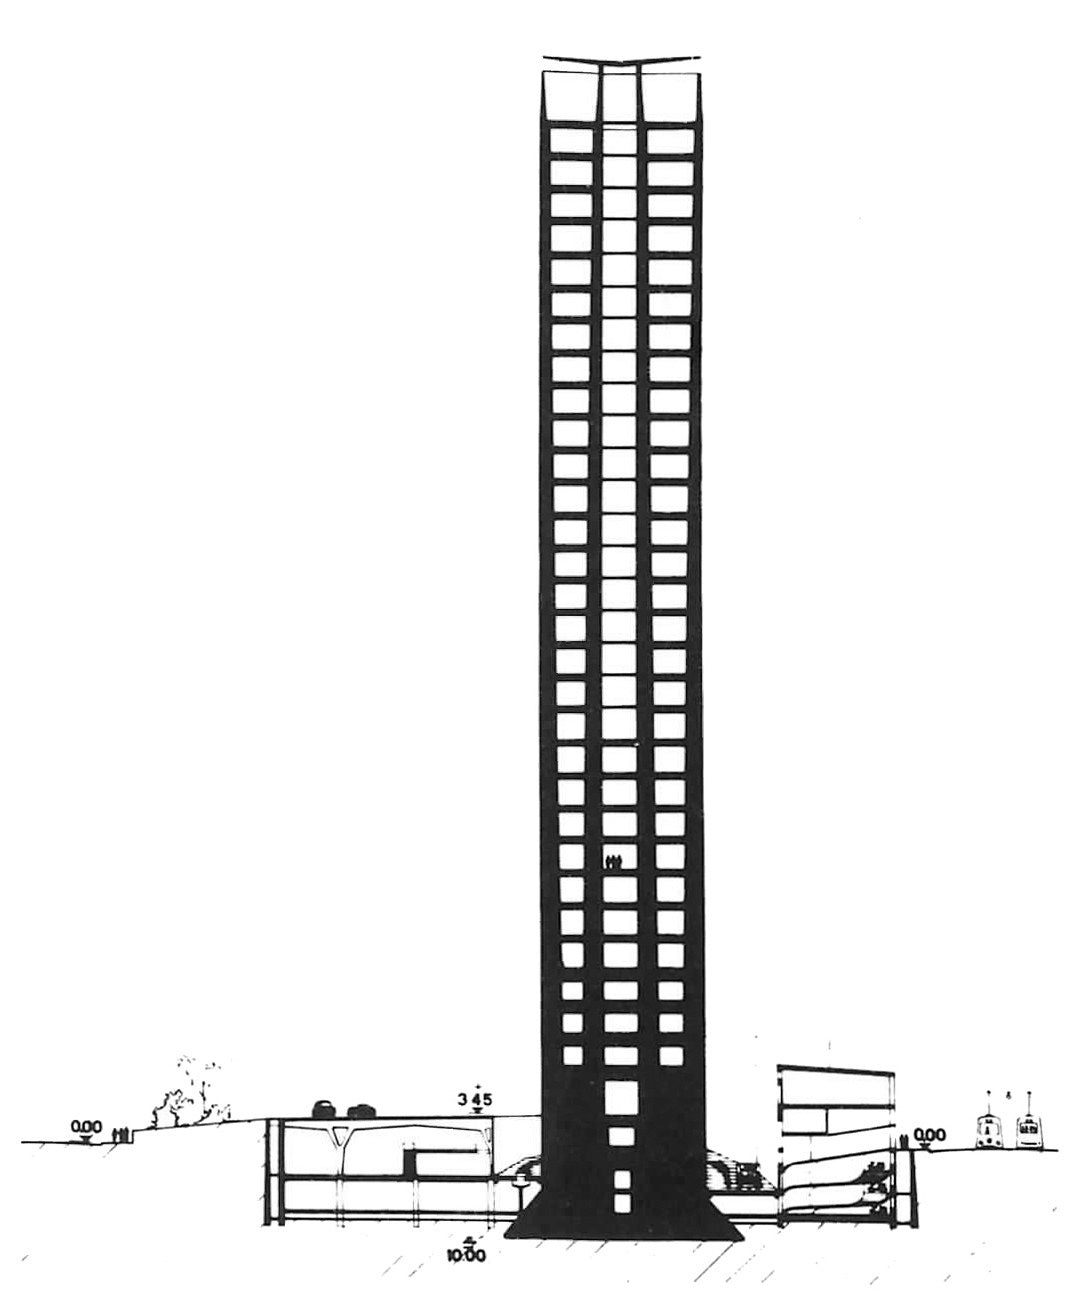 Gio Ponti Profile plan of Pirelli Tower in The Eclectic Life and Work of Gio Ponti for A Collected Man London